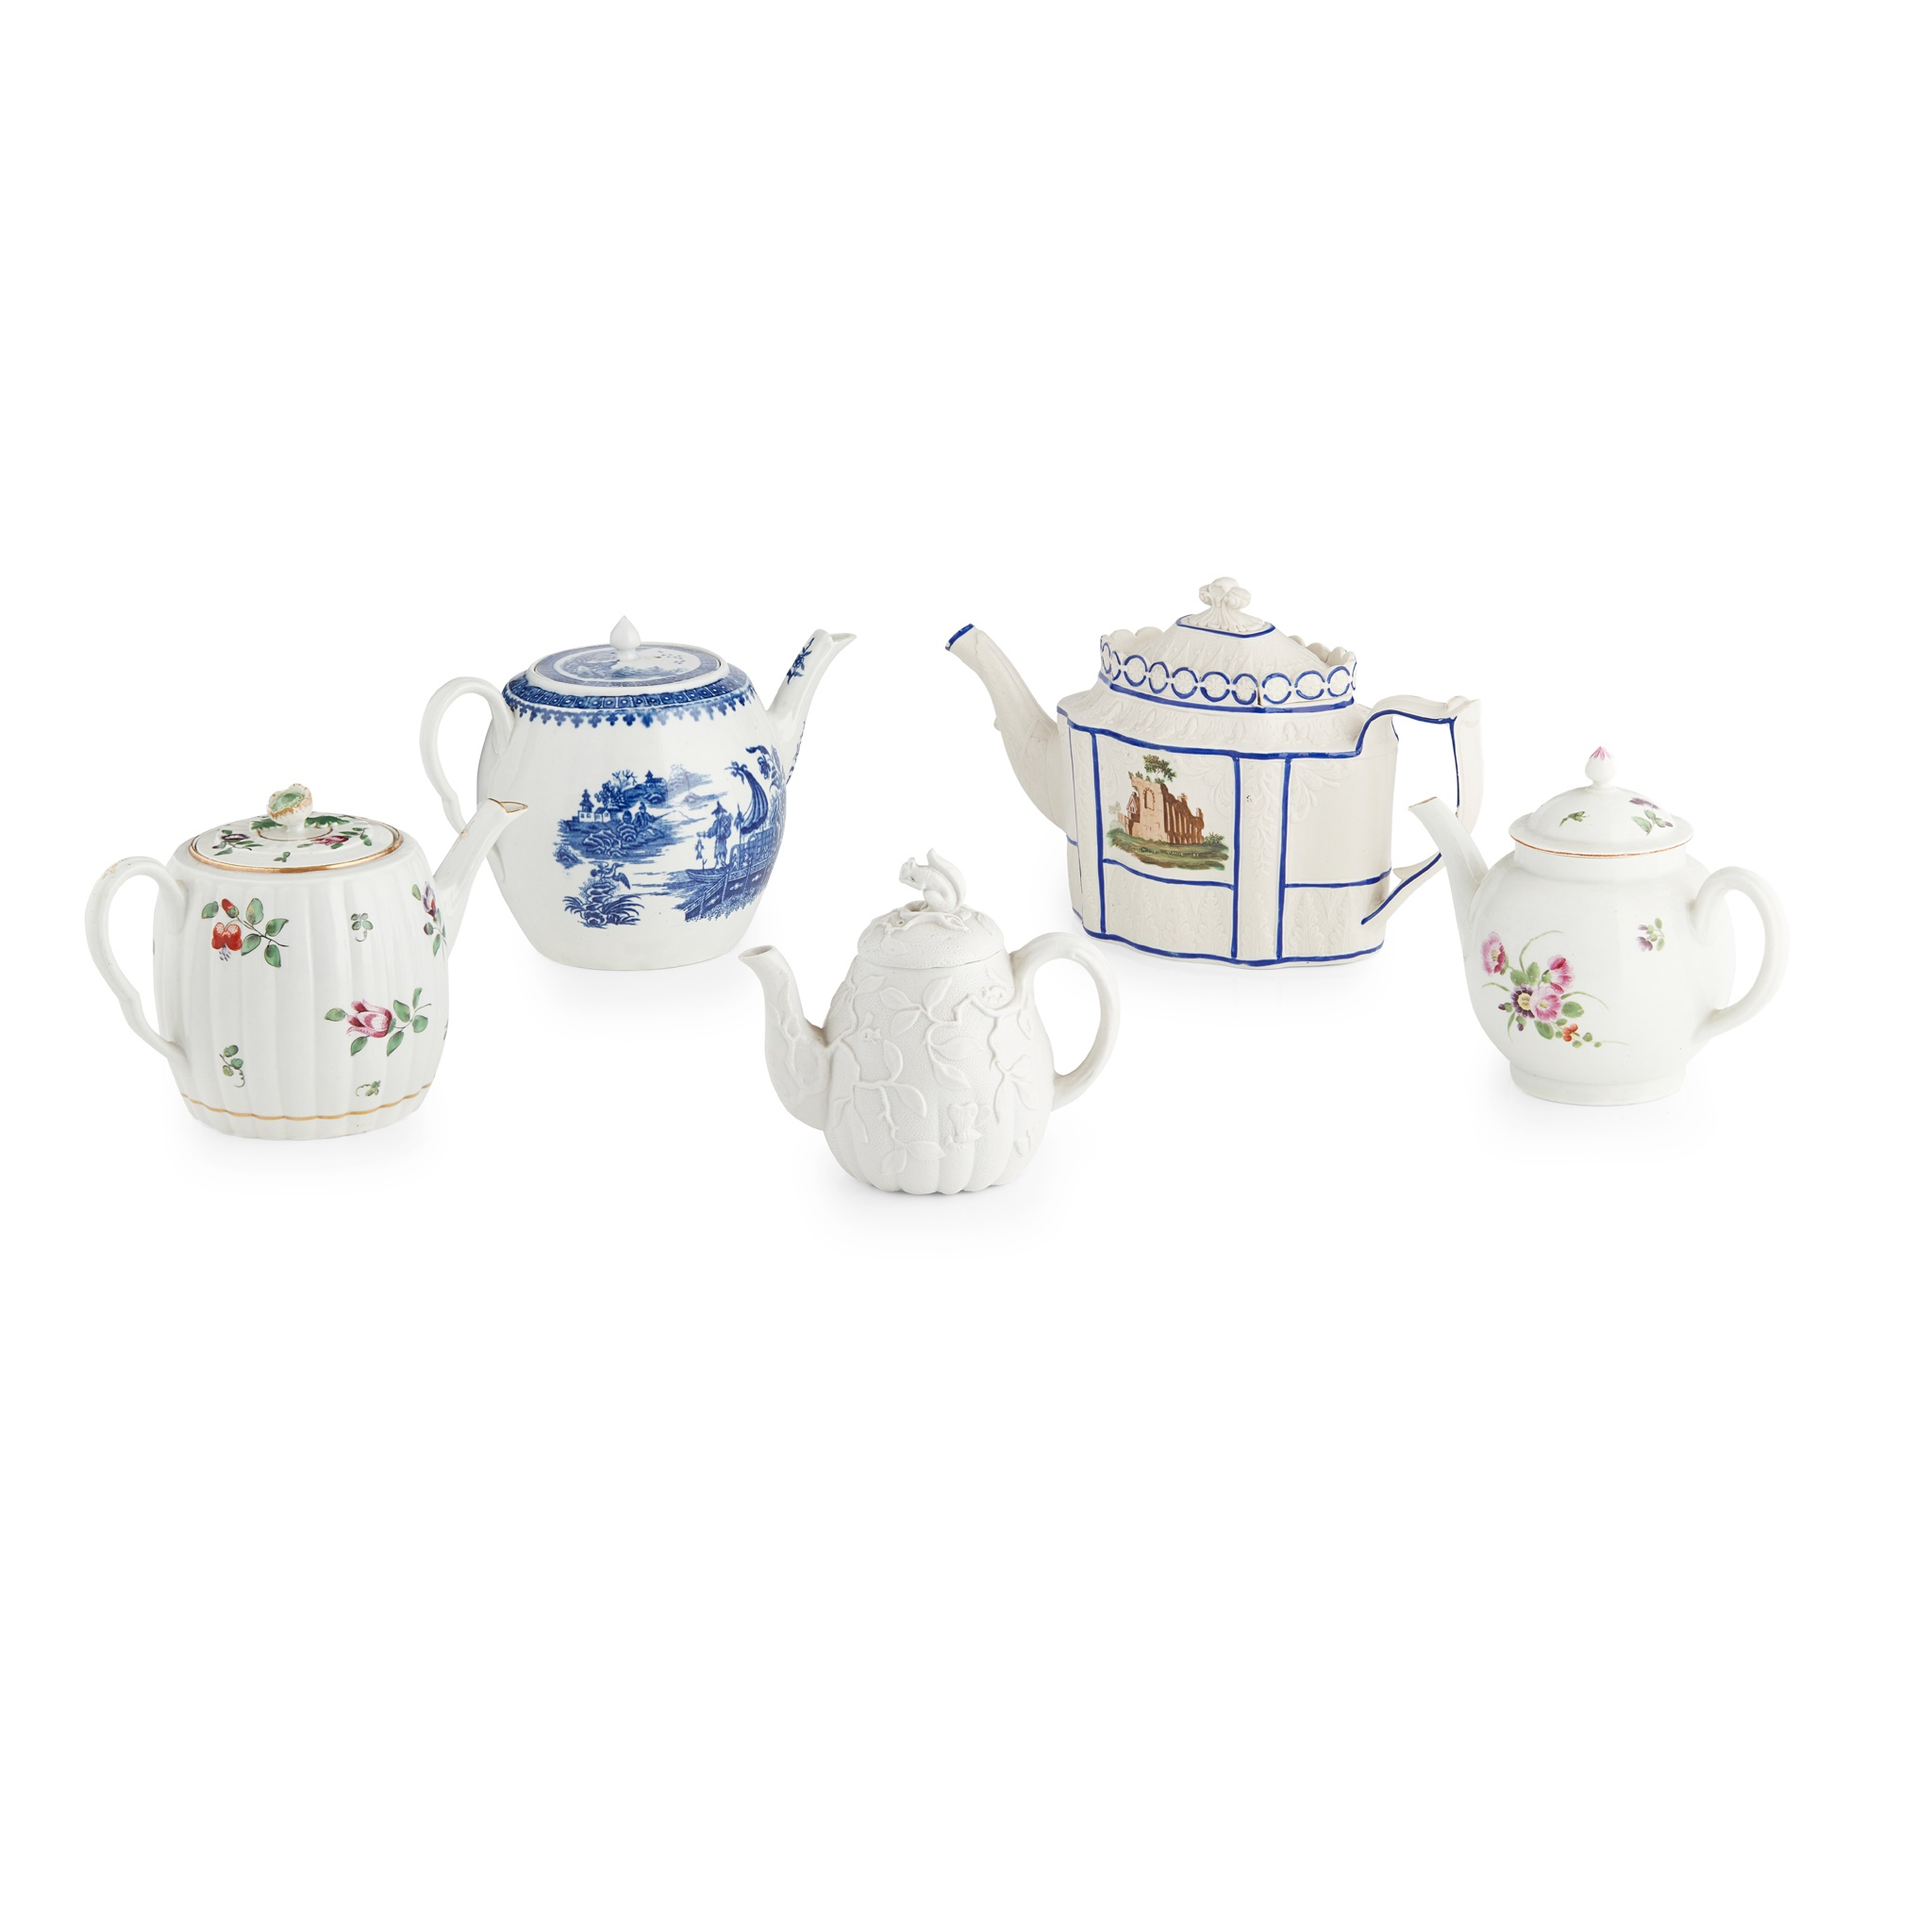 FOUR ENGLISH TEAPOTS LATE 18TH/ EARLY 19TH CENTURY